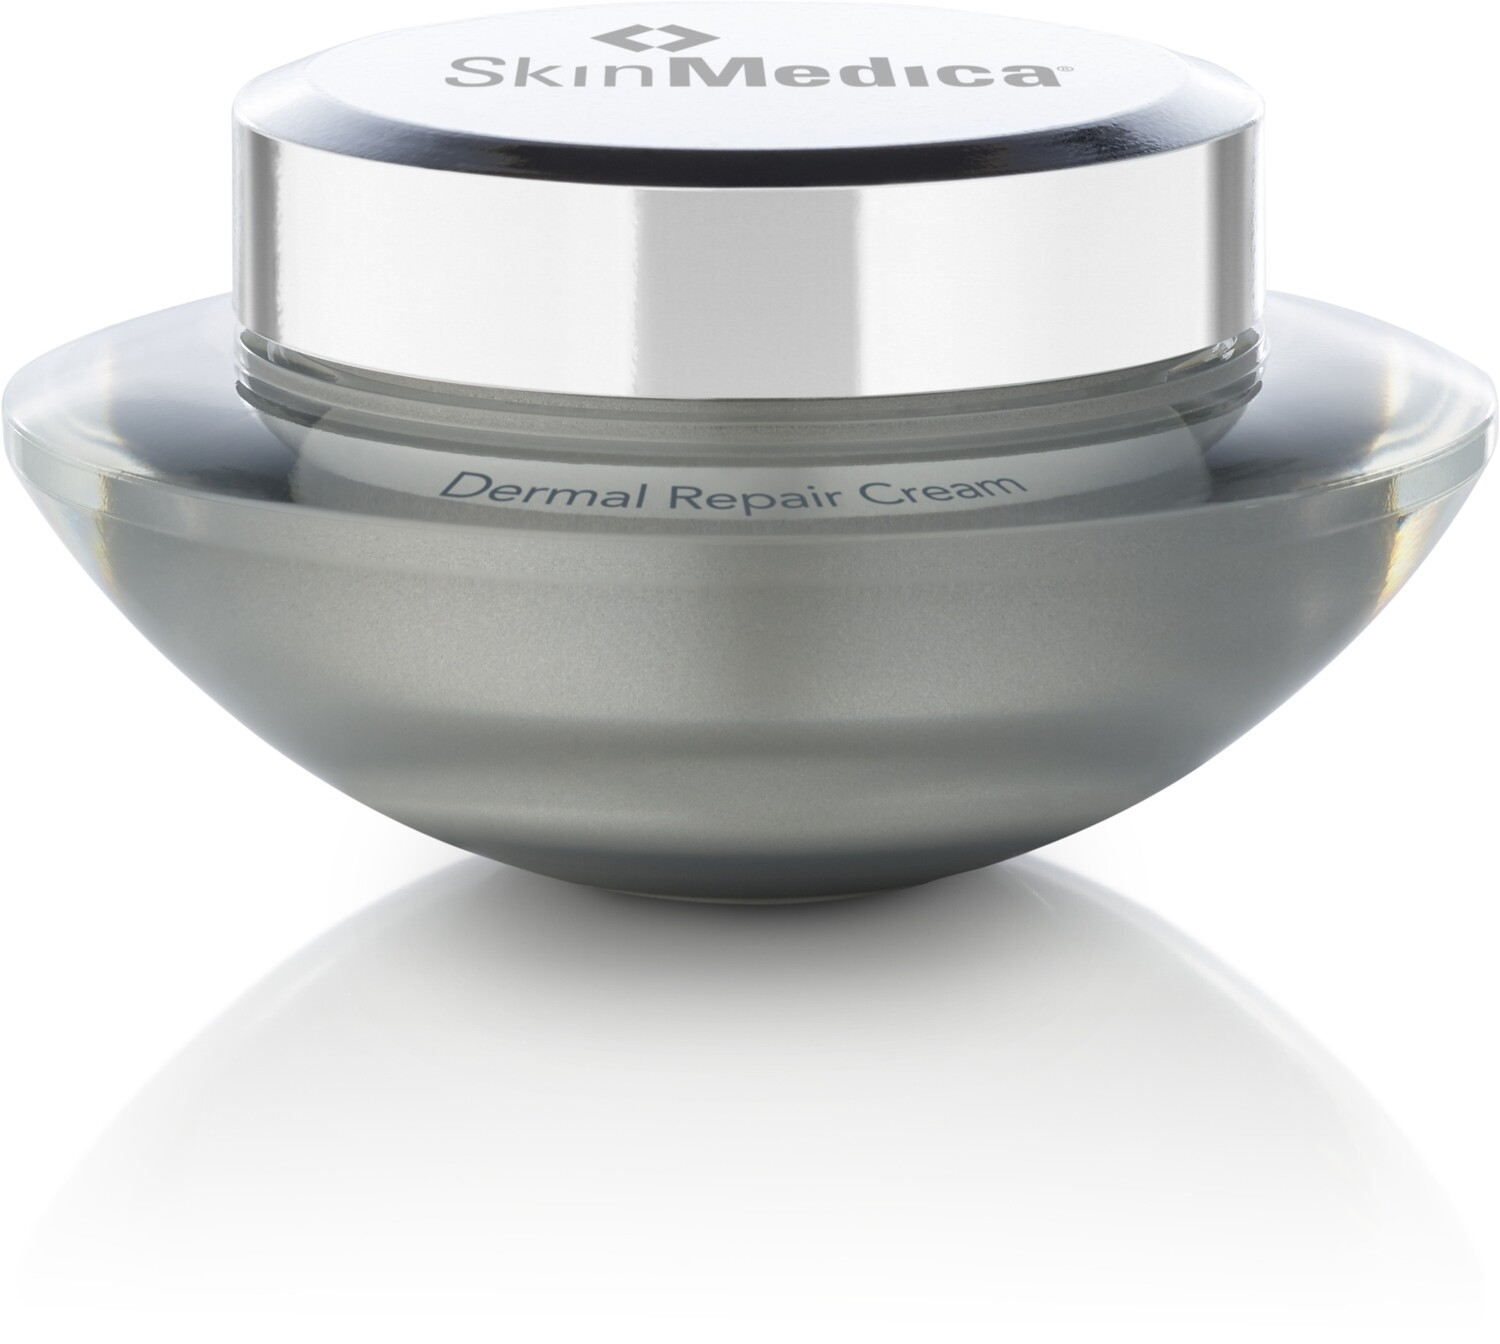 Skinmedica - Dermal Repair Cream